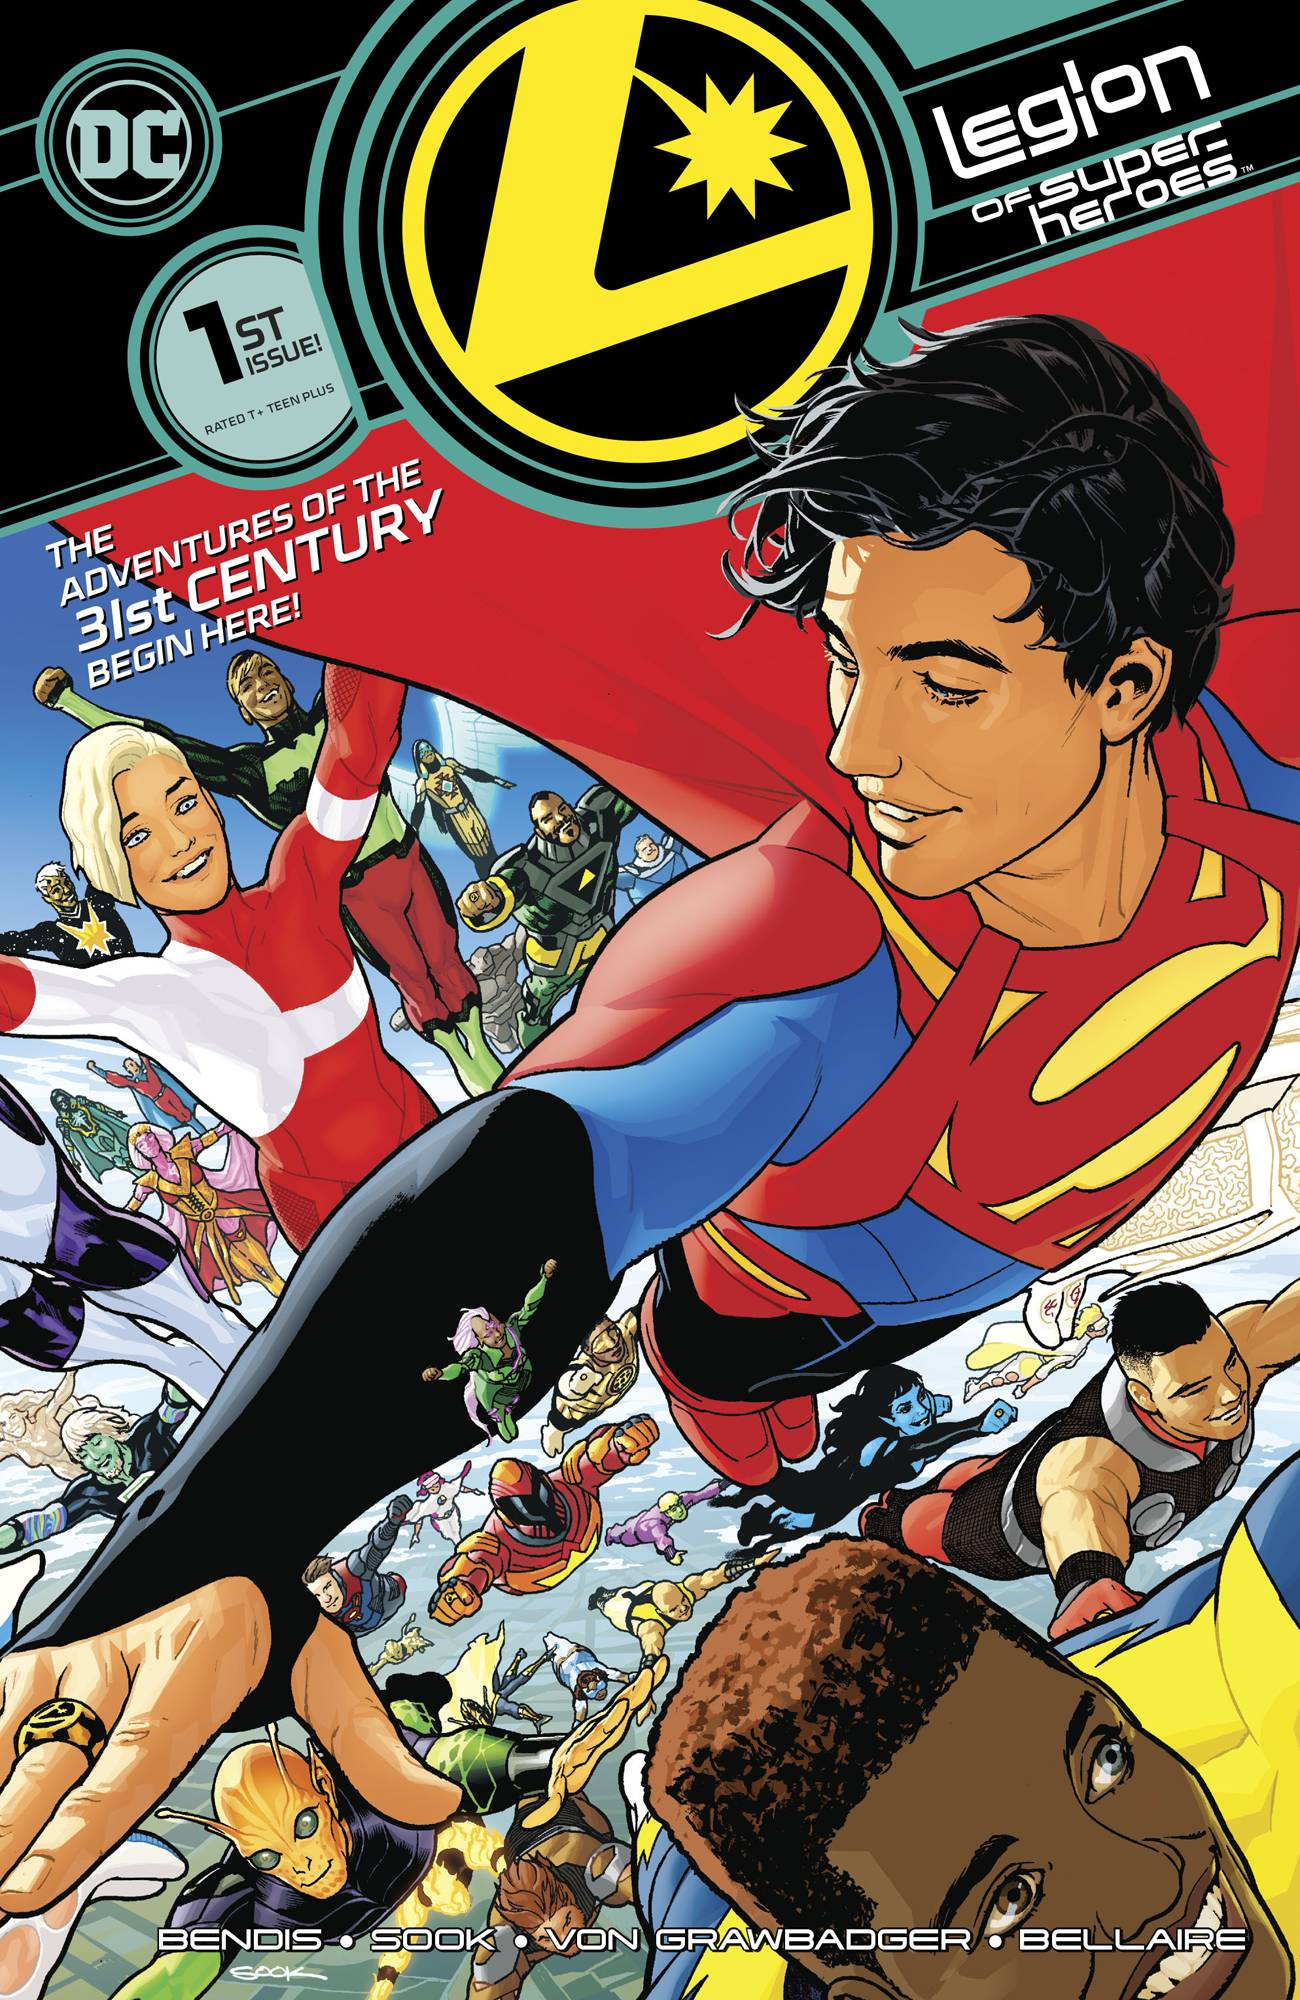 Legion Of Super Heroes #1 (2019)